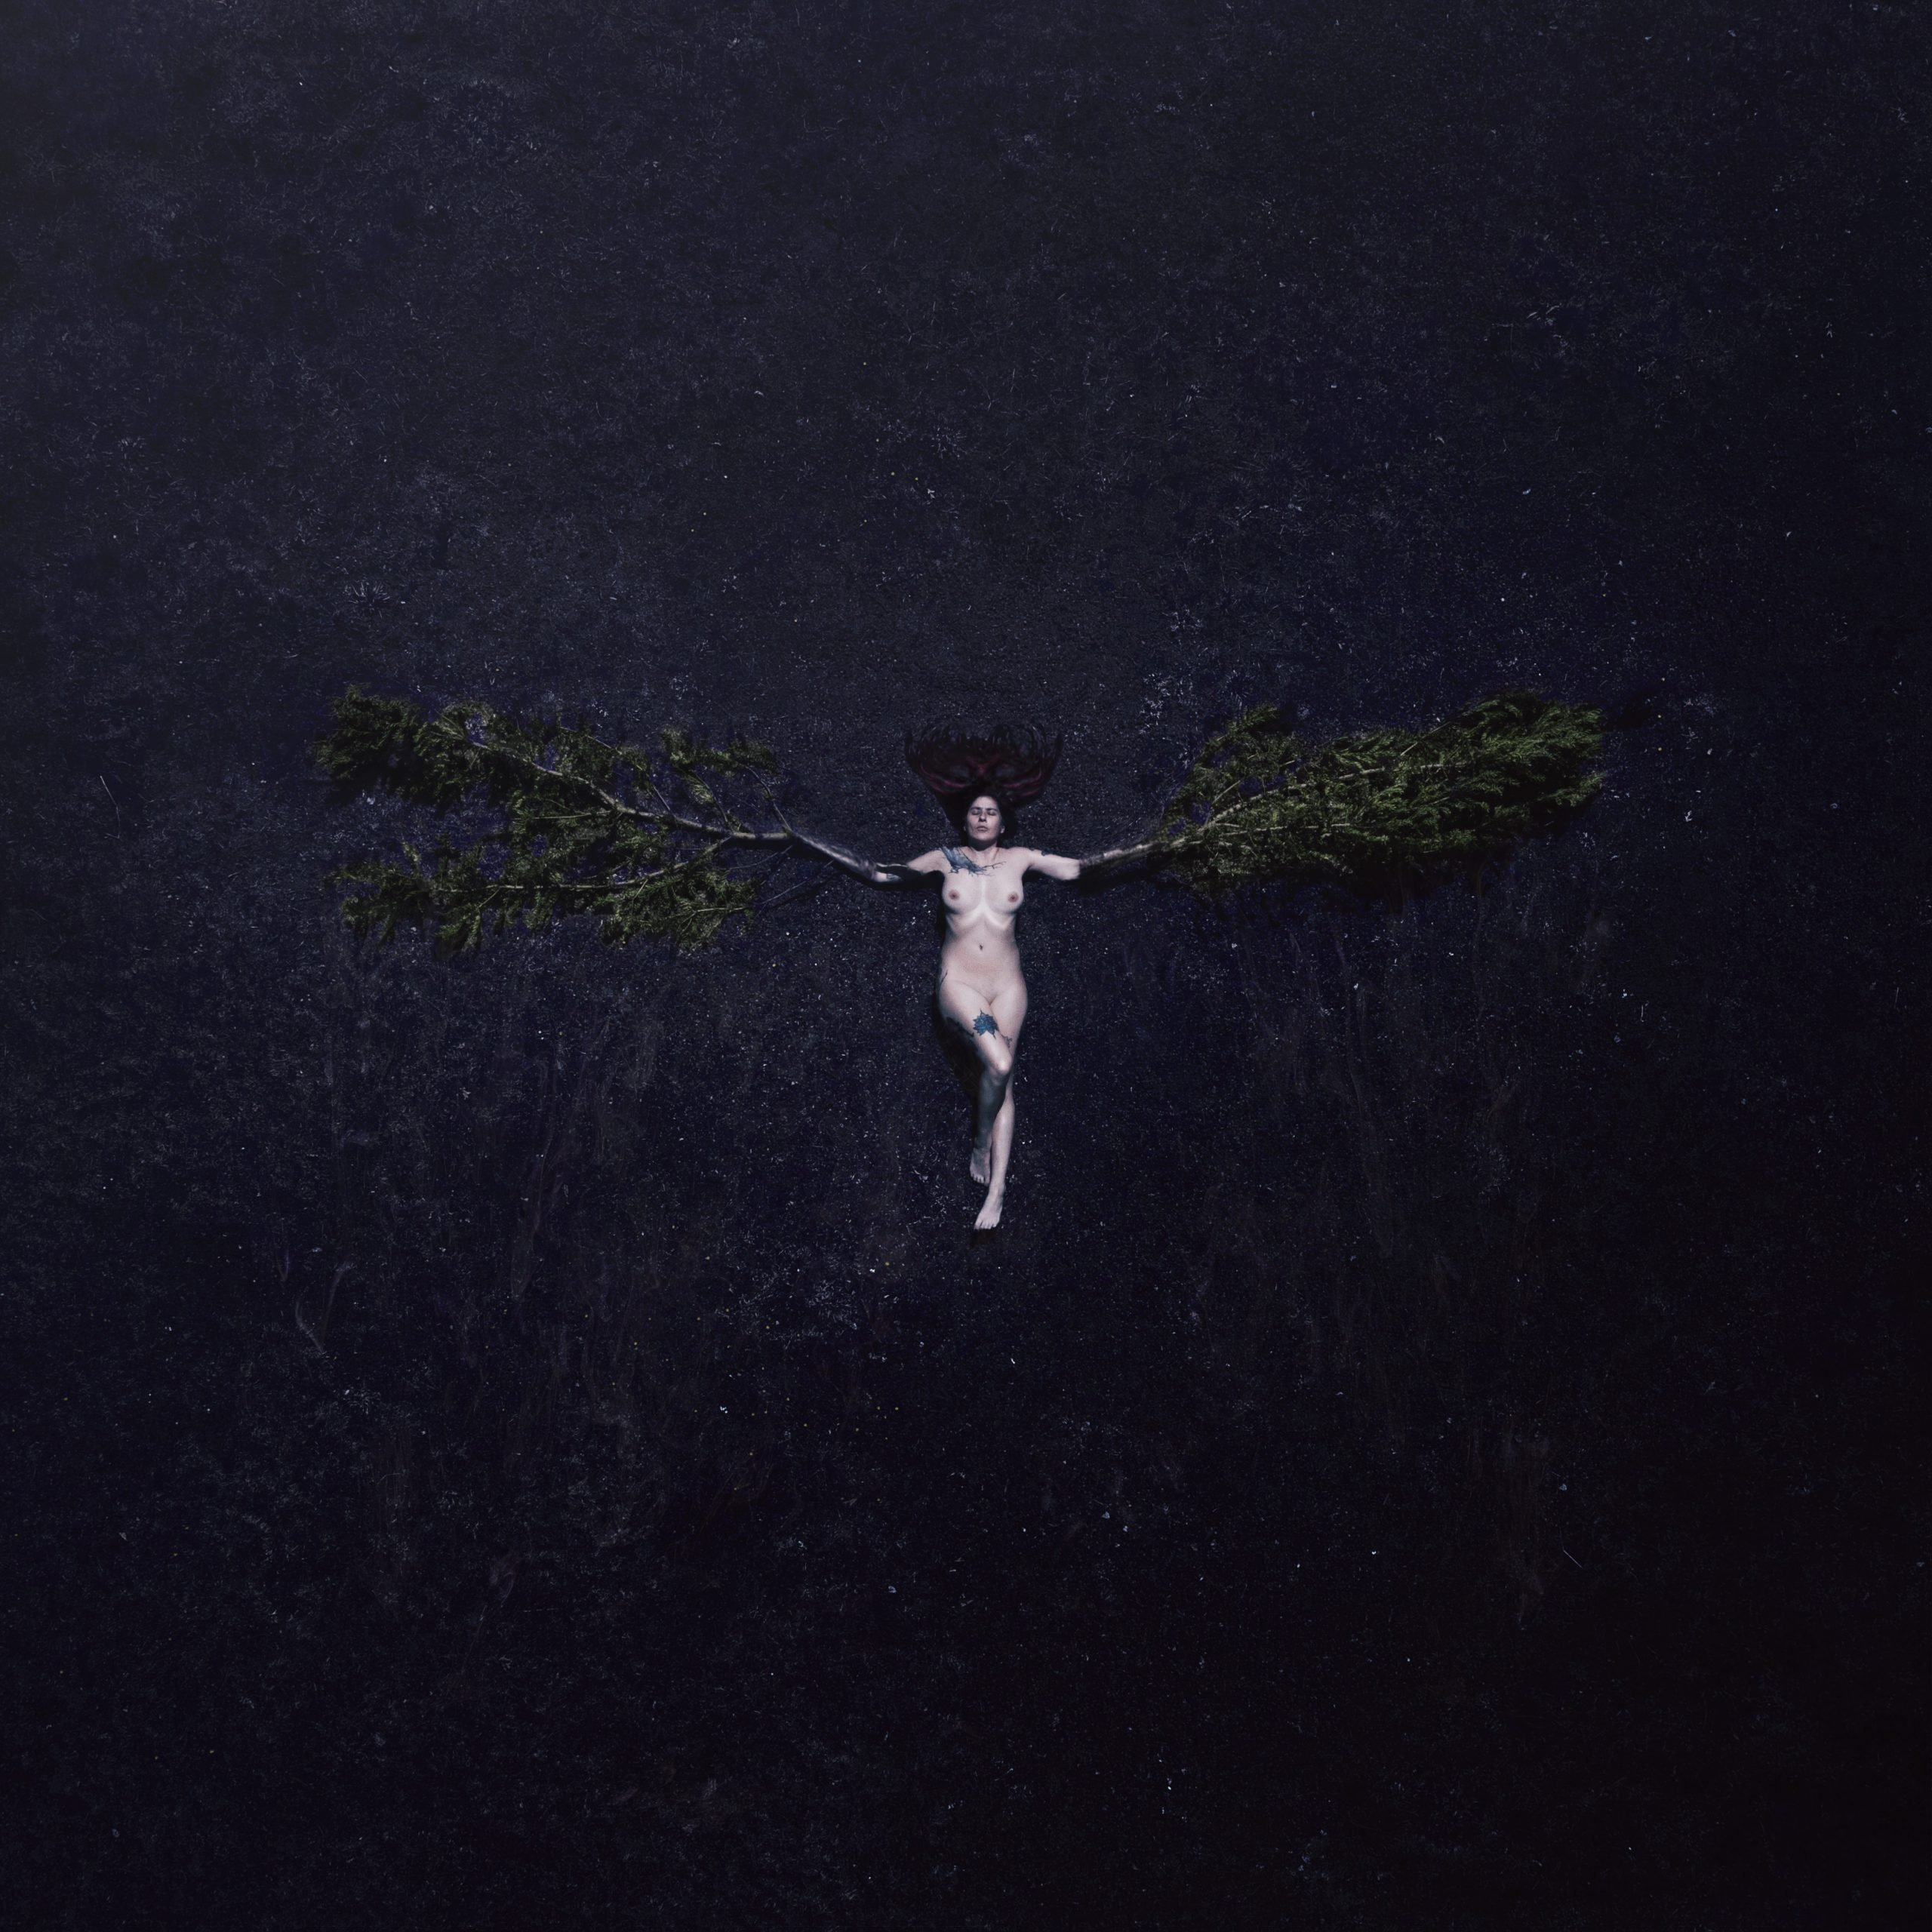 drone self portrait with tree limbs for wings